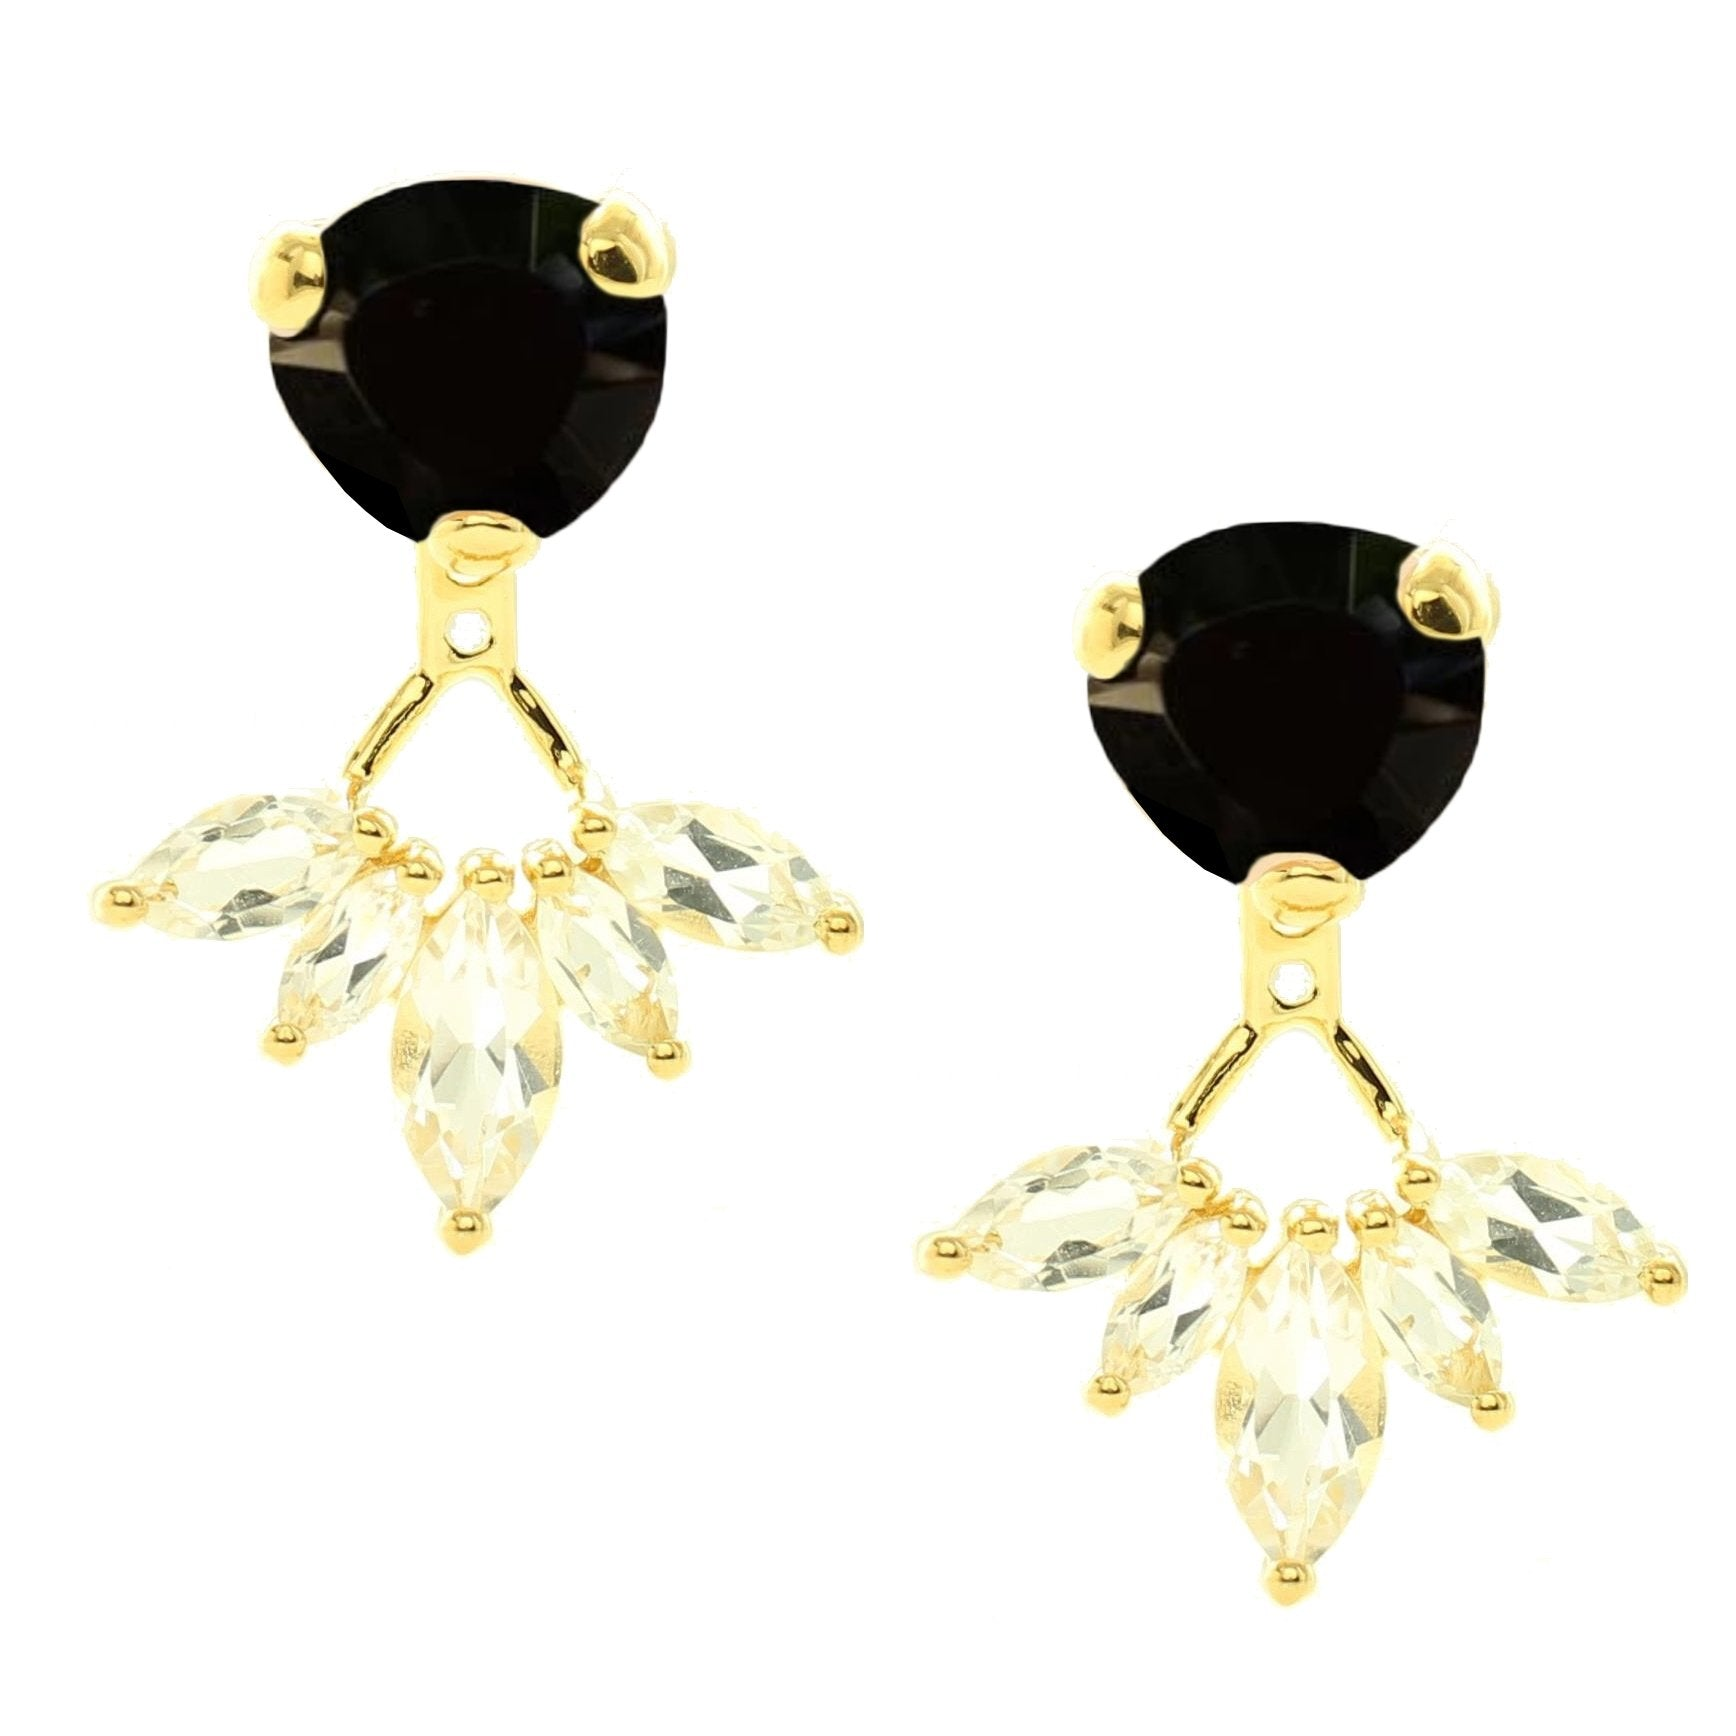 Fearless Ear Jackets - Black Onyx, White Topaz & Gold - SO PRETTY CARA COTTER